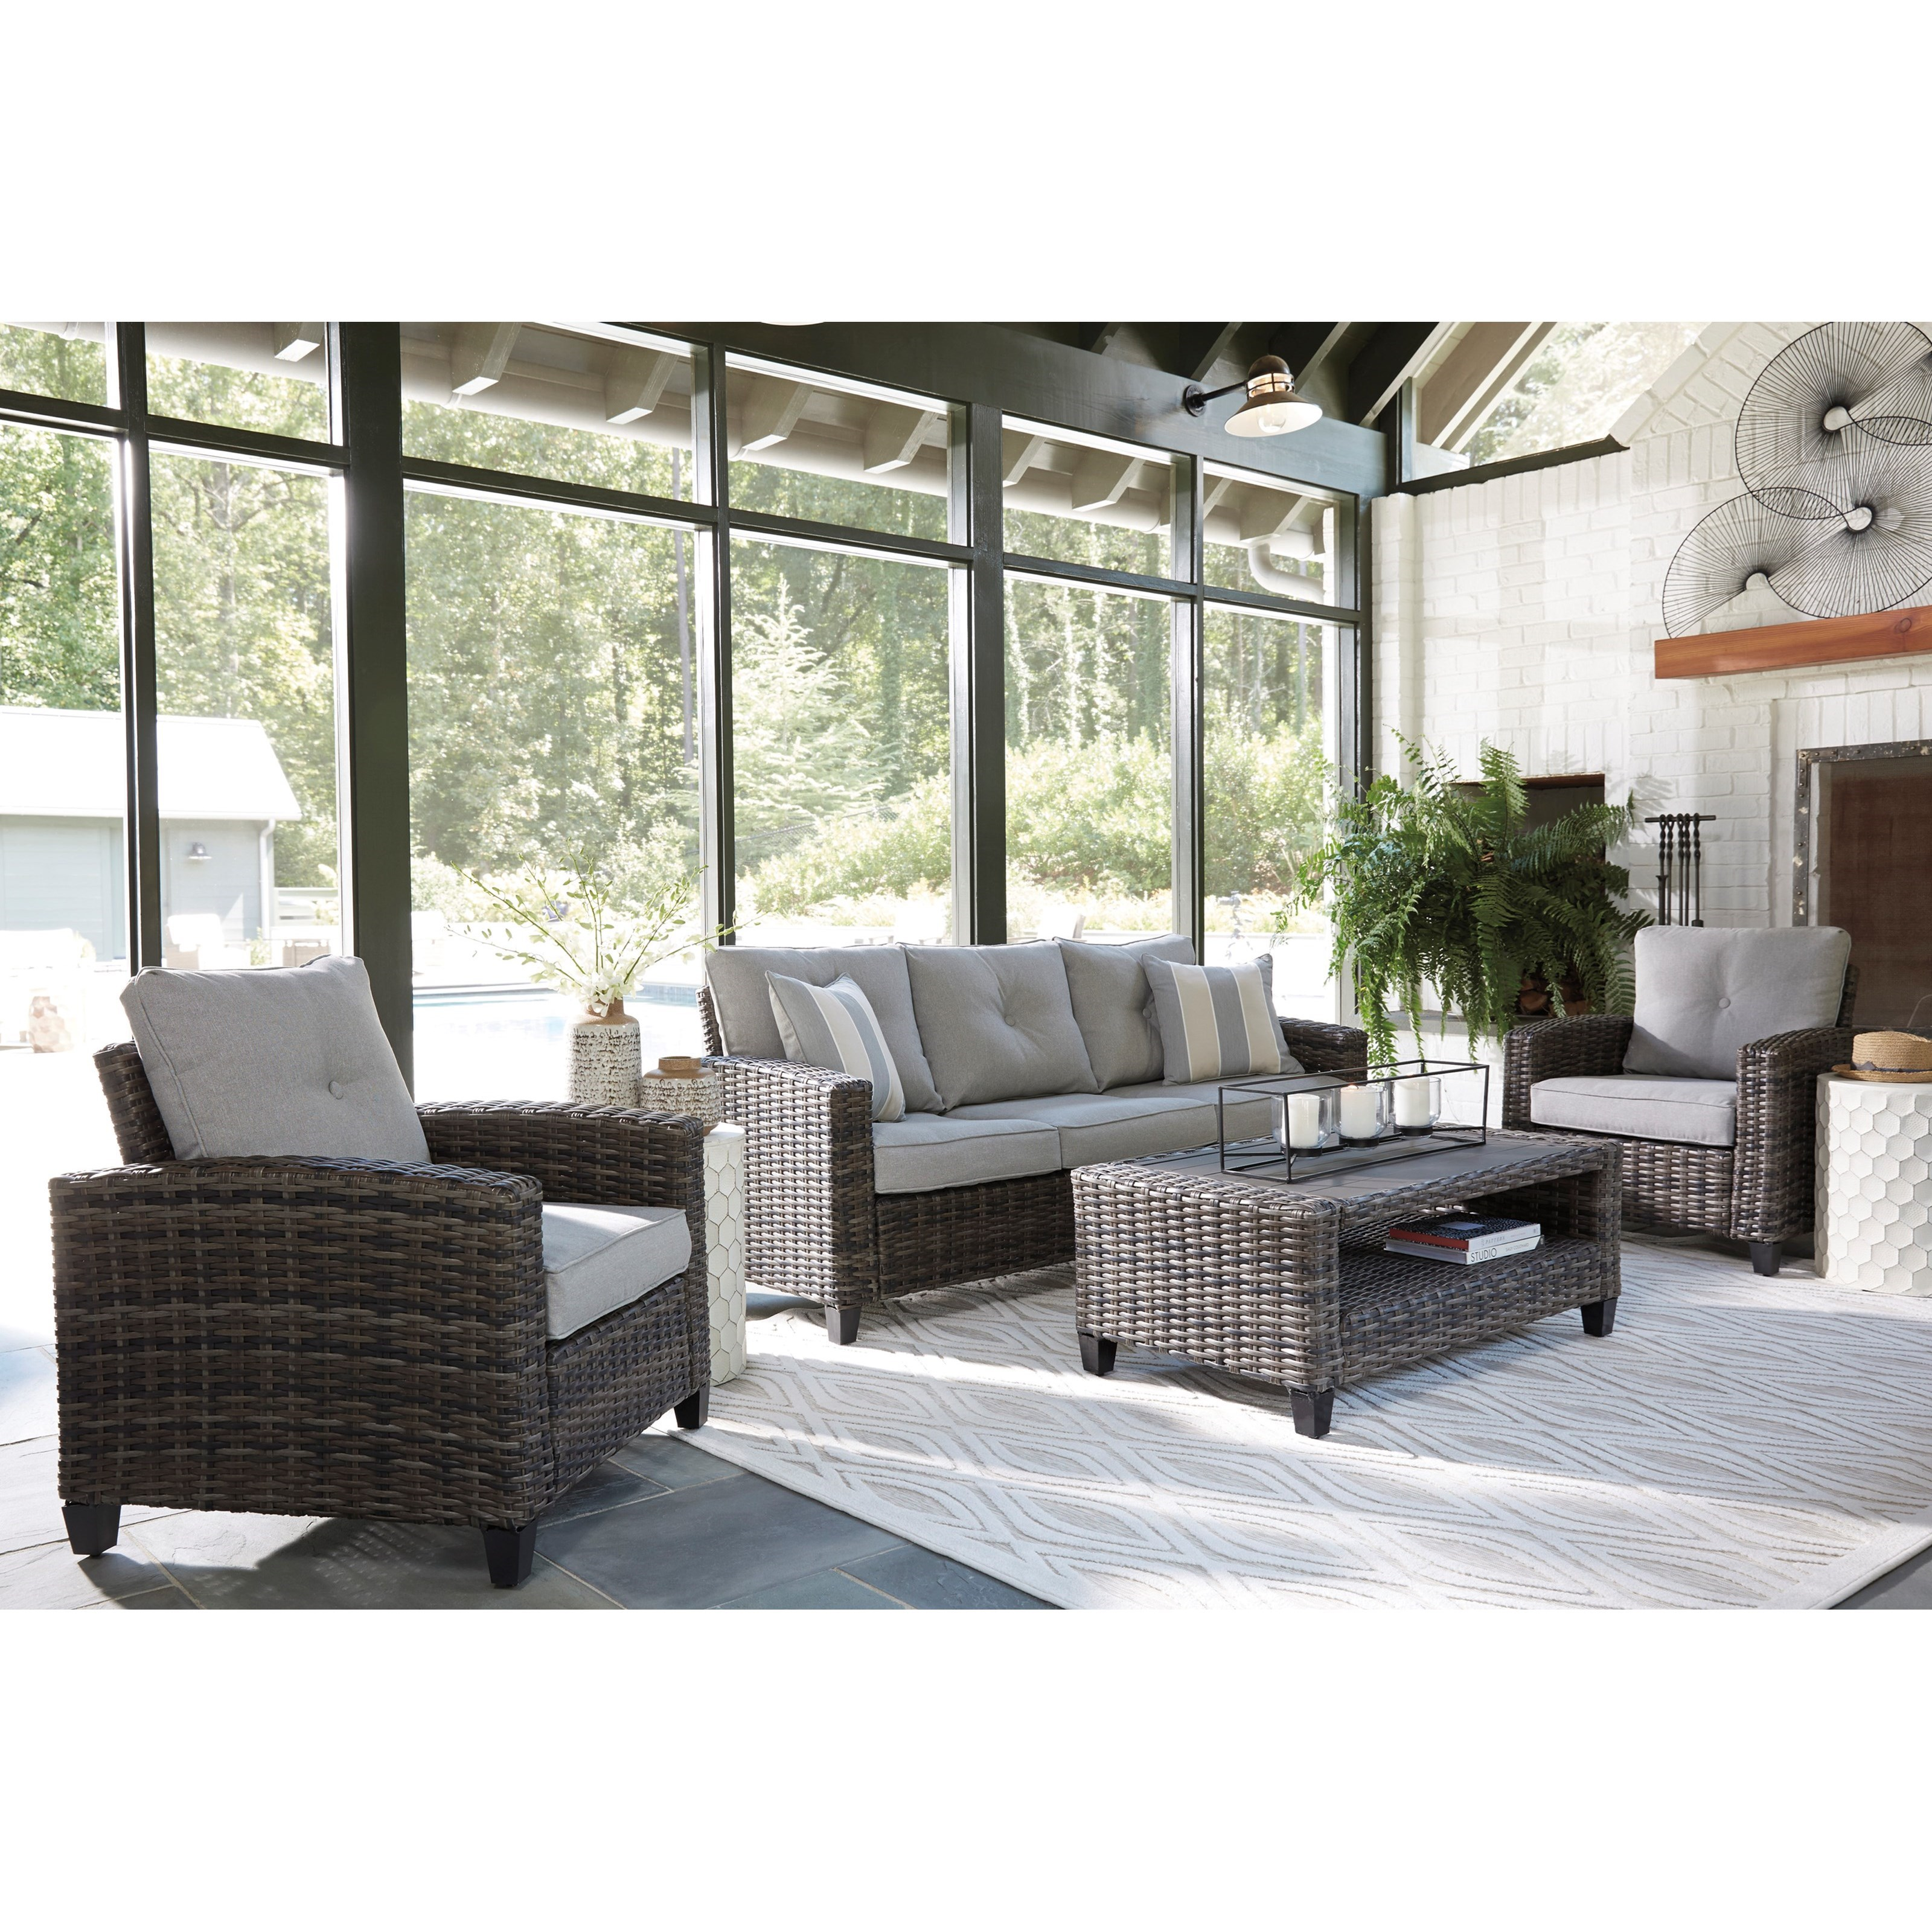 Cloverbrooke Outdoor Conversation Set by Signature Design by Ashley at Value City Furniture